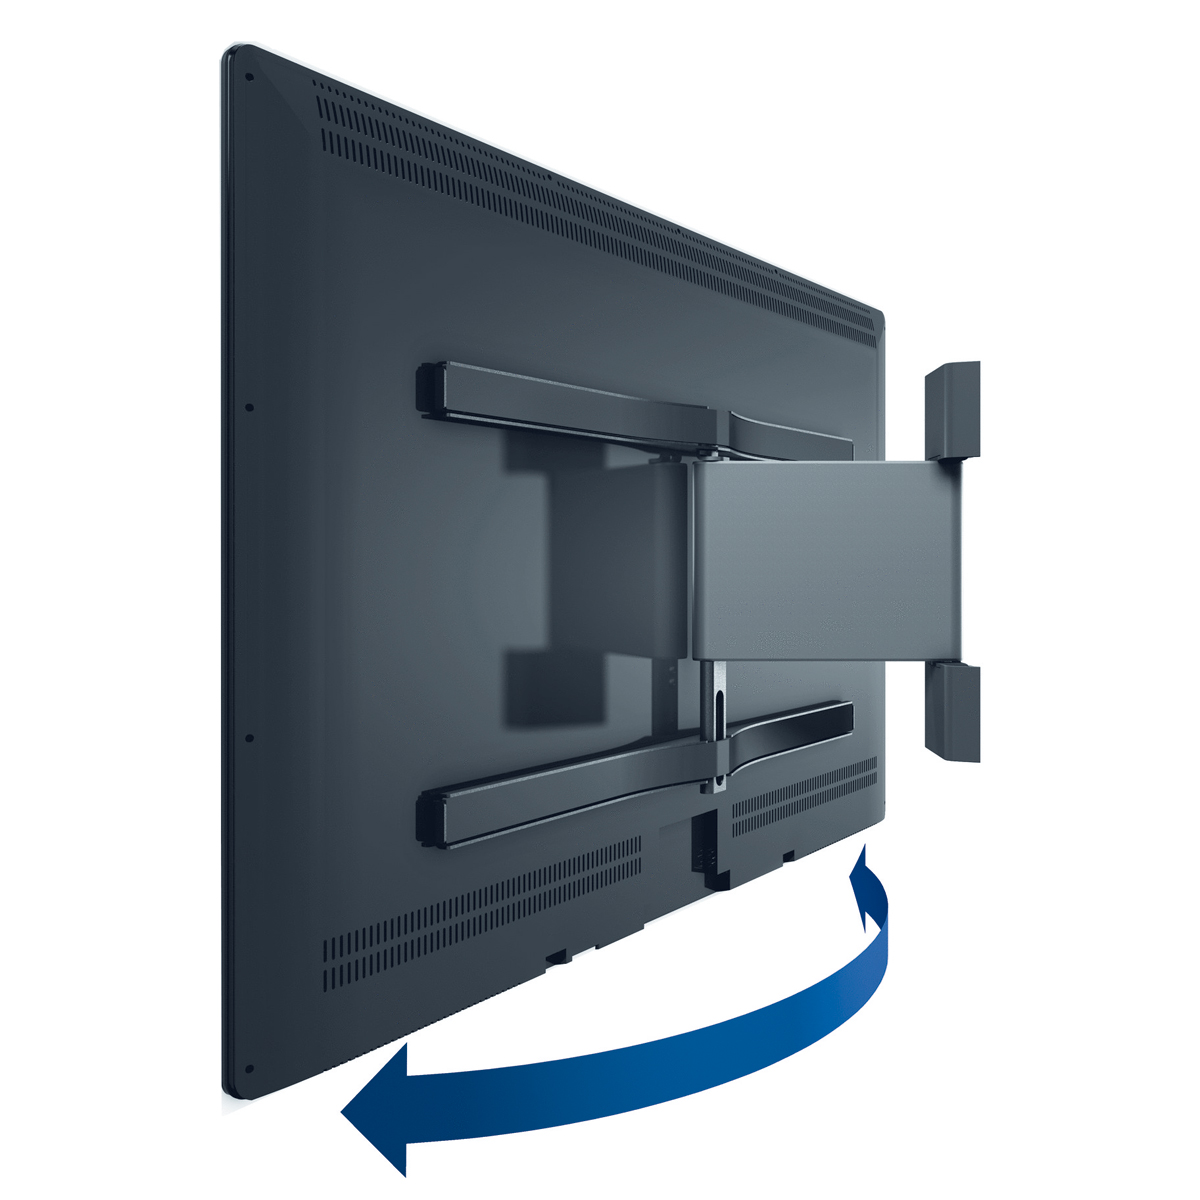 Support Mural Tv Tec Take Vogel 39s Thin Rc 355 Support Mural Tv Vogel 39s Sur Ldlc